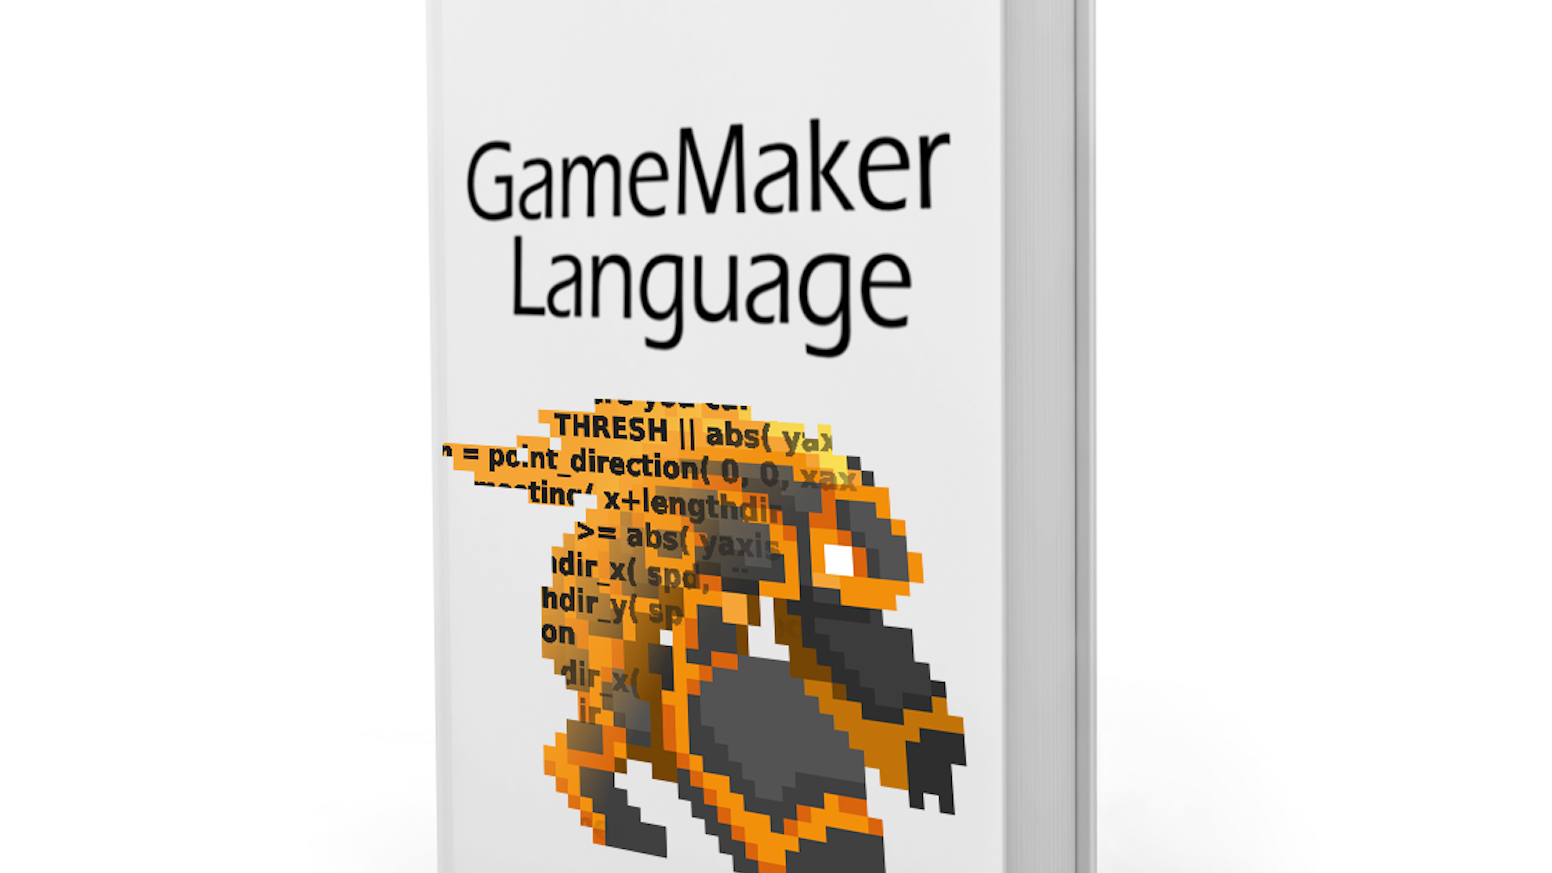 Gamemaker language an in depth guide by heartbeast studios gamemaker language an in depth guide by heartbeast studios kickstarter baditri Choice Image